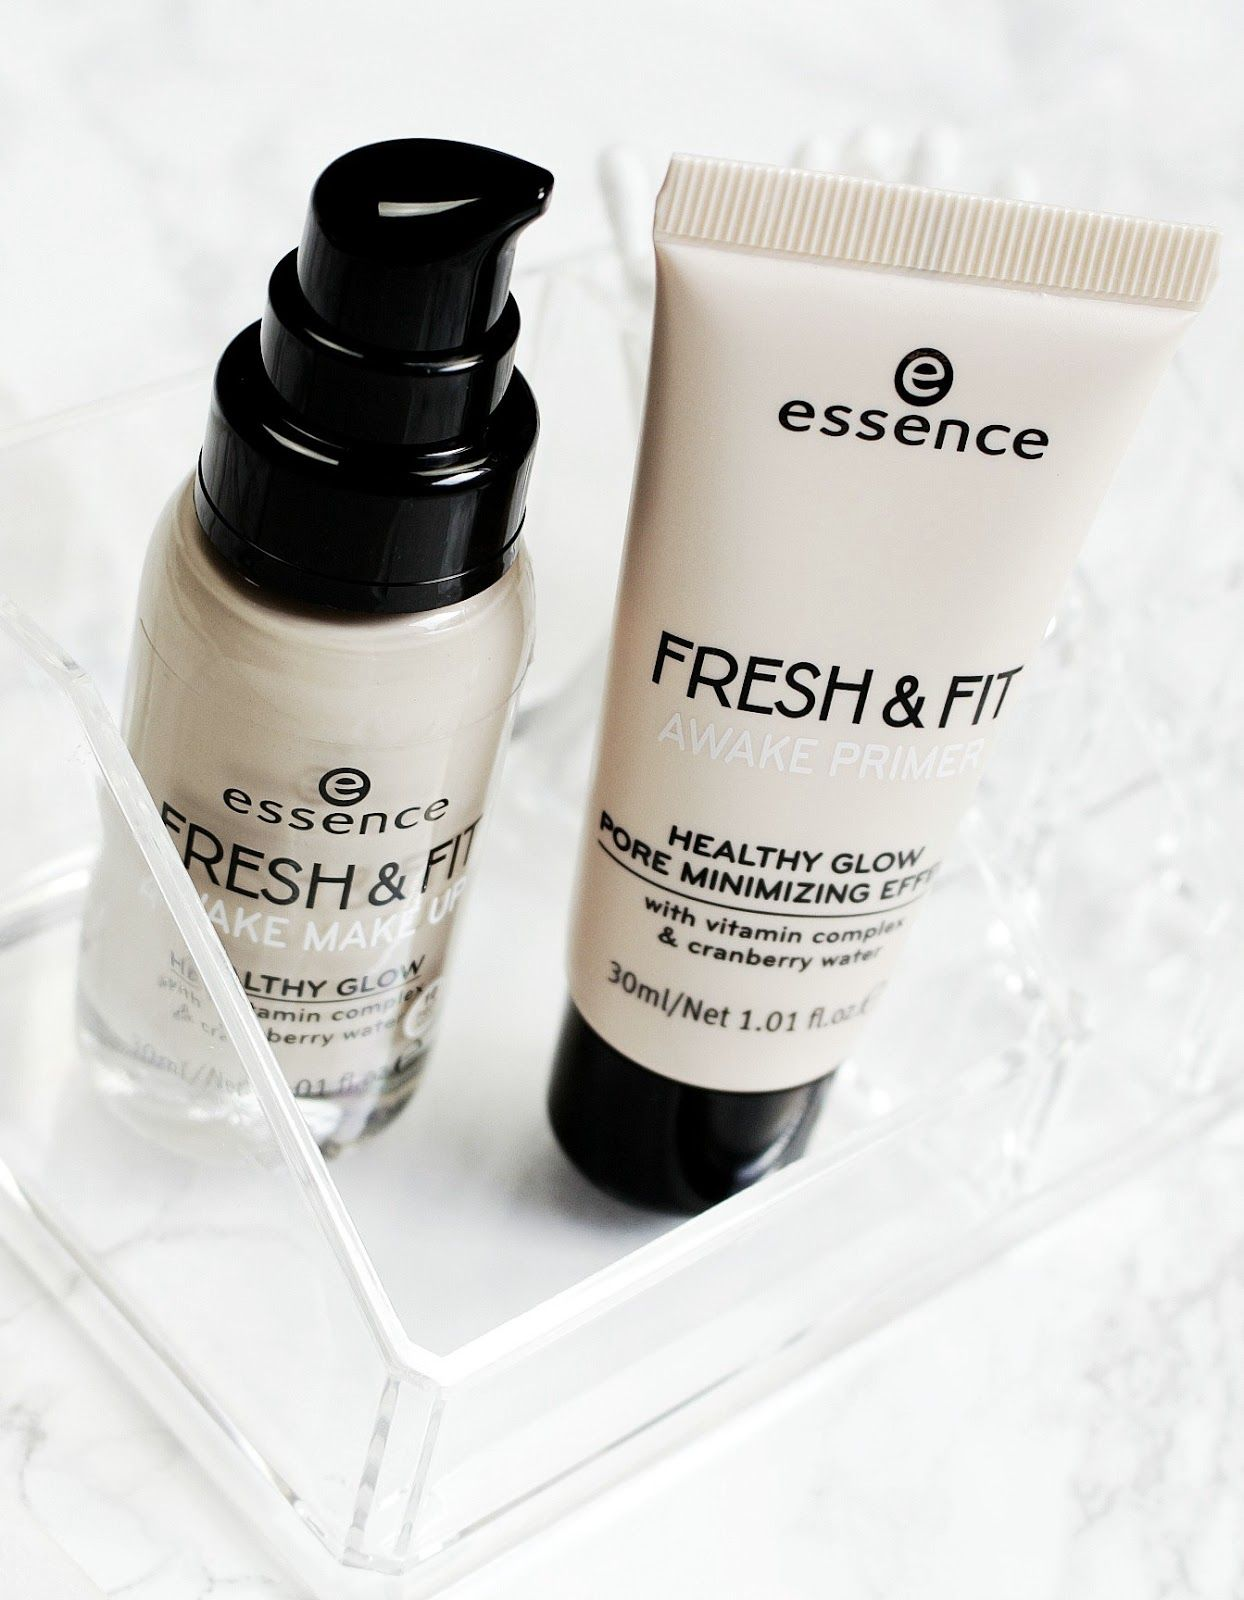 NEW Essence Fresh & Fit Primer Review in 2019 Essence